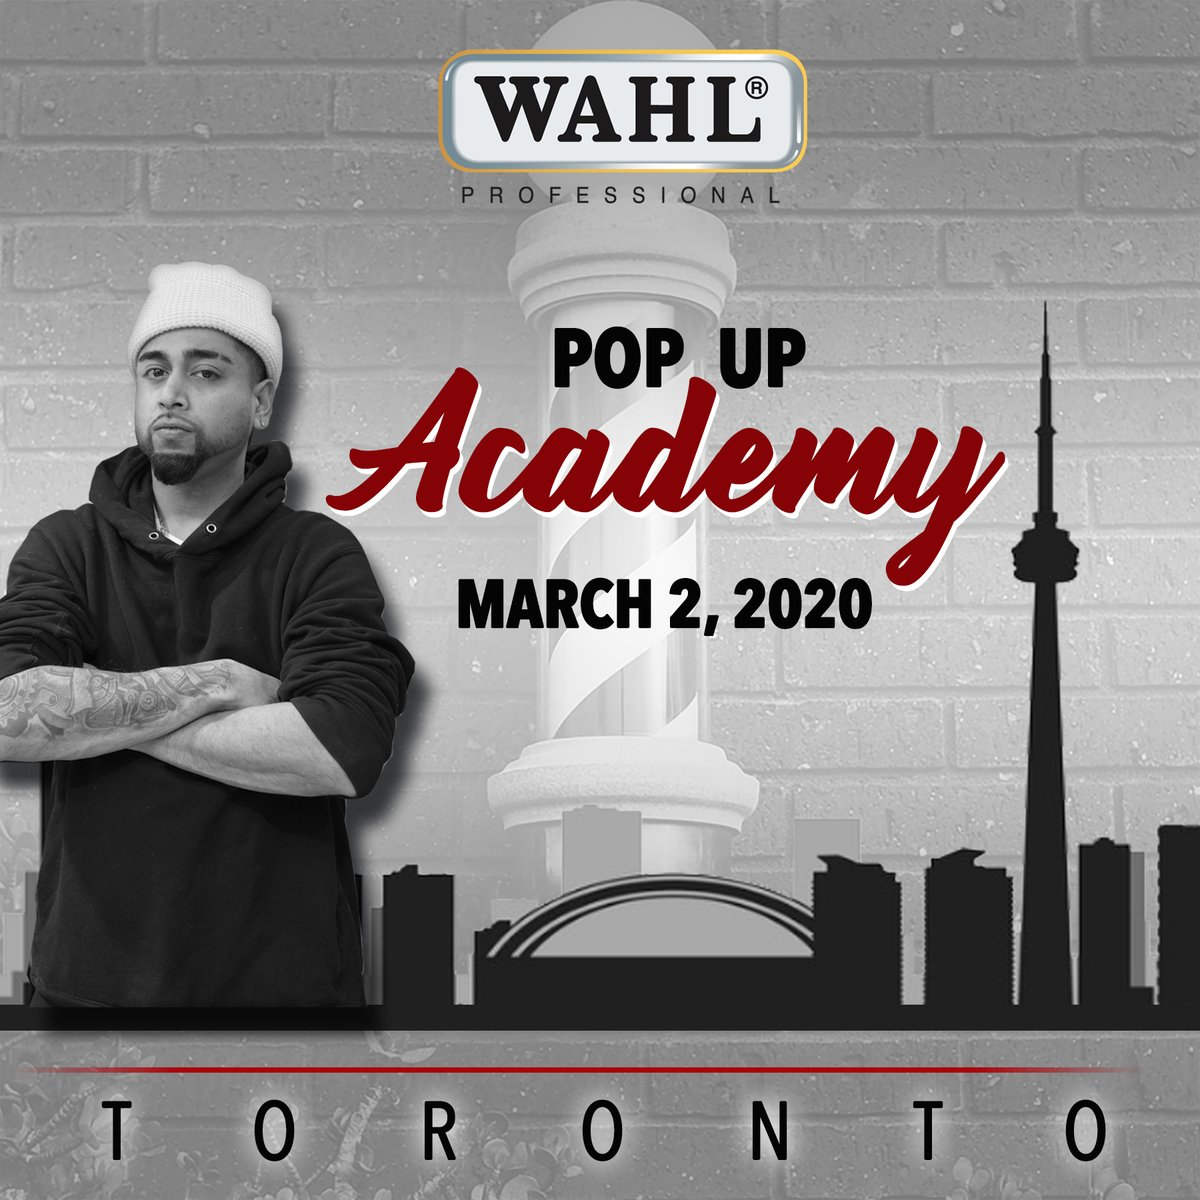 We are dropping our 1st ever @WahlofFame Pop Up Academy in Canada on March 2nd, 2020! Come see the 10x award winning Barber Shawn Barbz! Don't wait, get your spot now: https://bit.ly/31jWOoj   #WahlProCanada #WahlCanada #WahlCanadaPopUp #TorontoBarbers #GTABarbers #Eventbritepic.twitter.com/JMvTyMXYTH